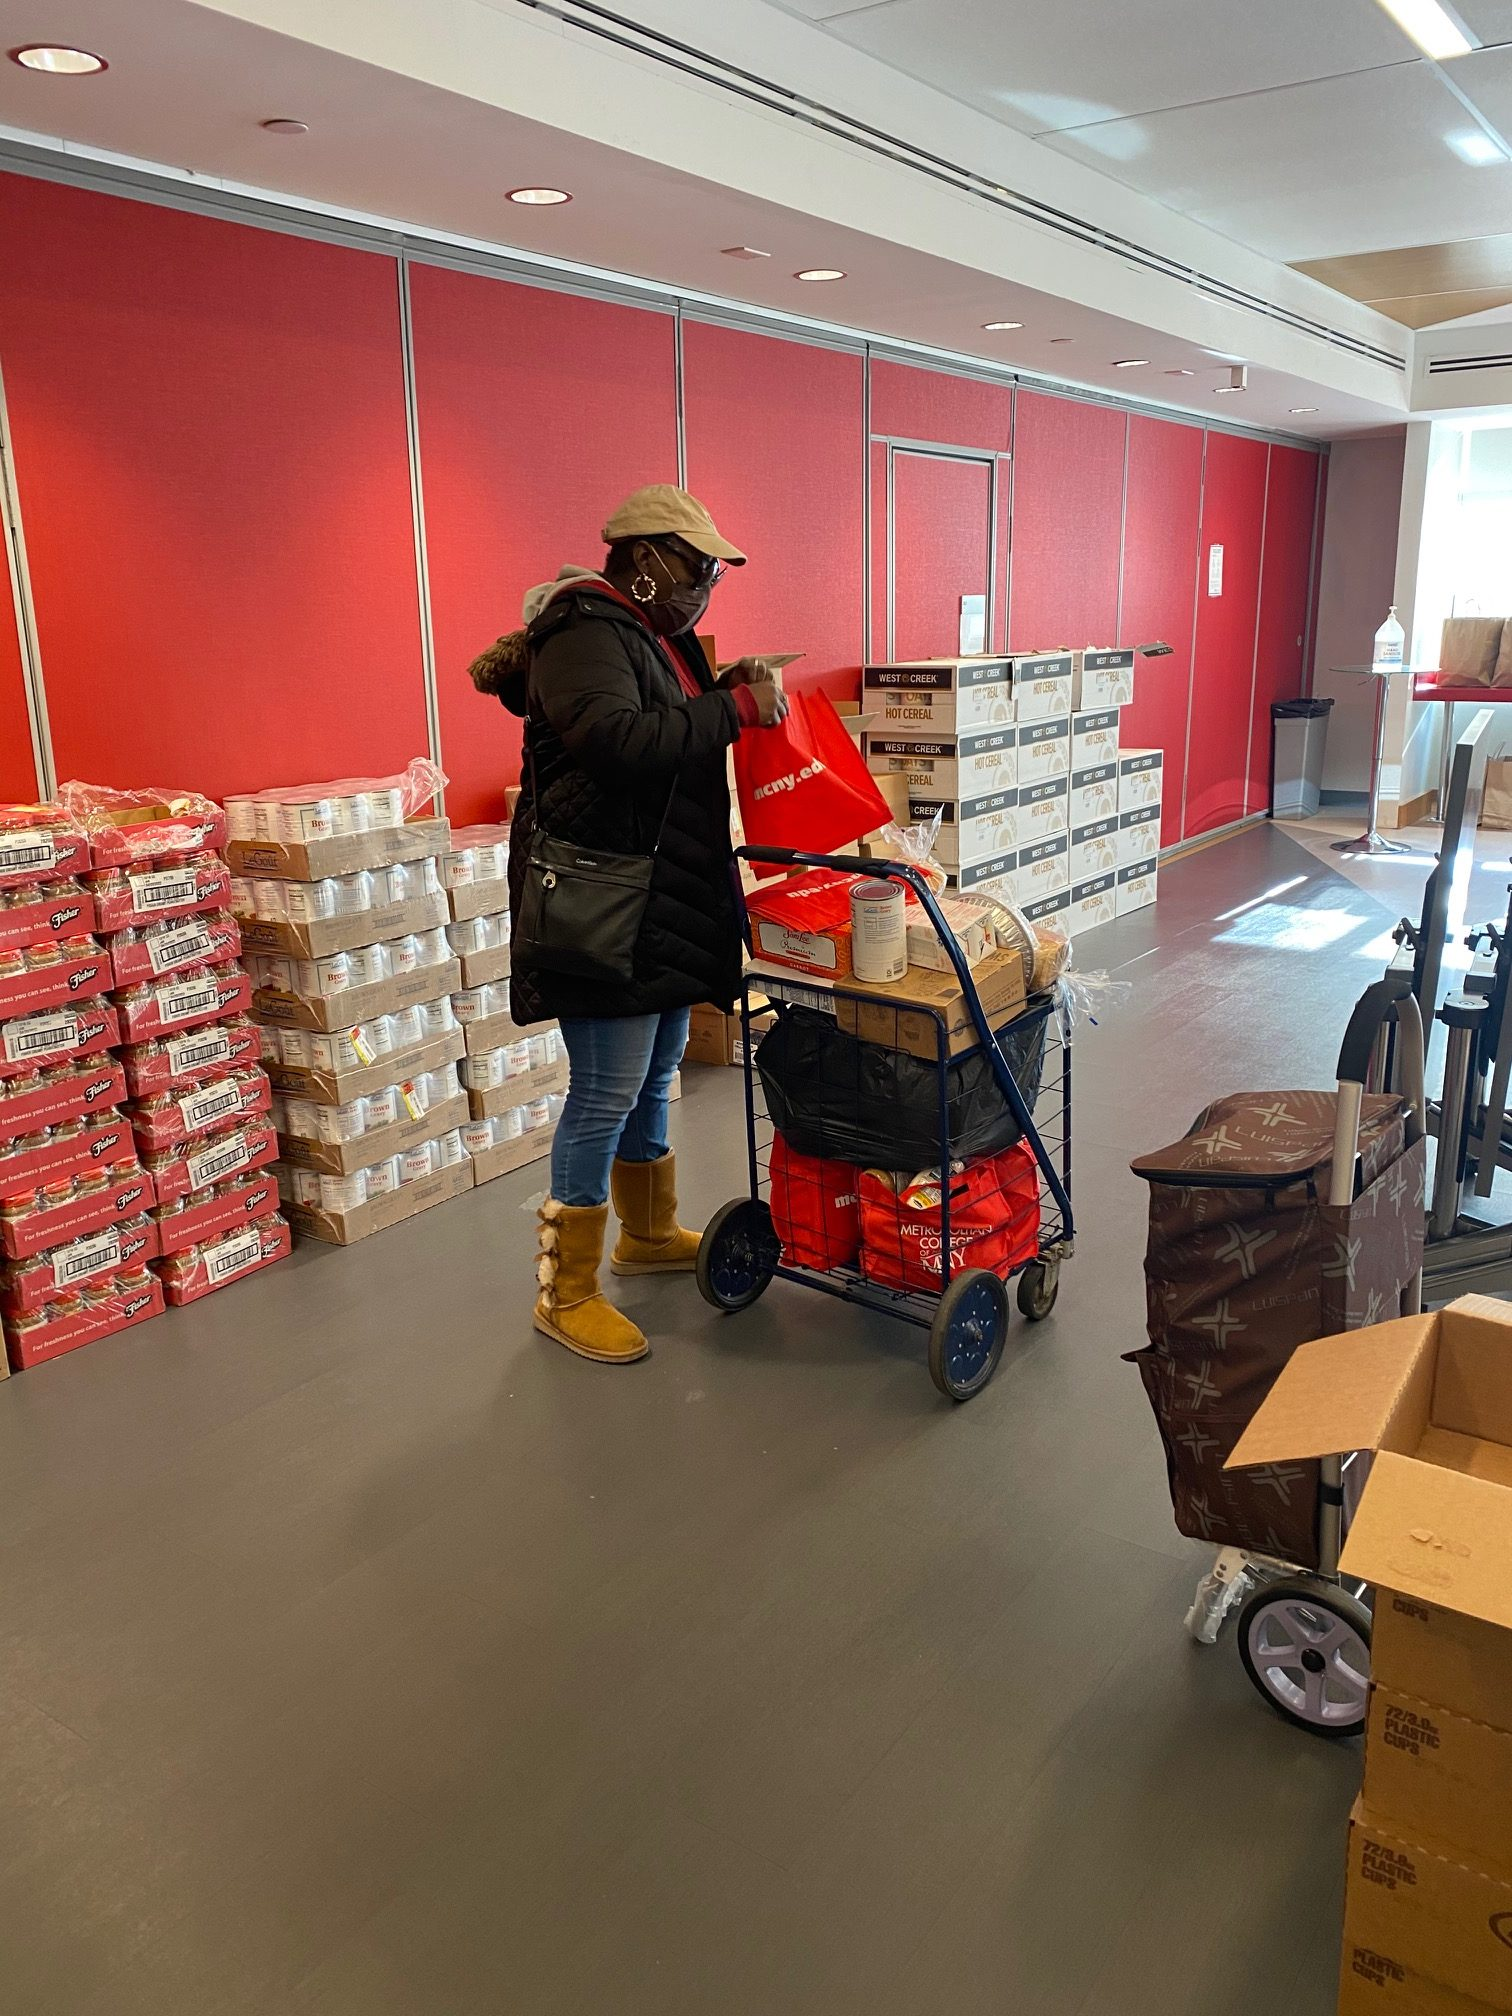 The Need for Food (and more) for College Students During COVID-19 & Beyond